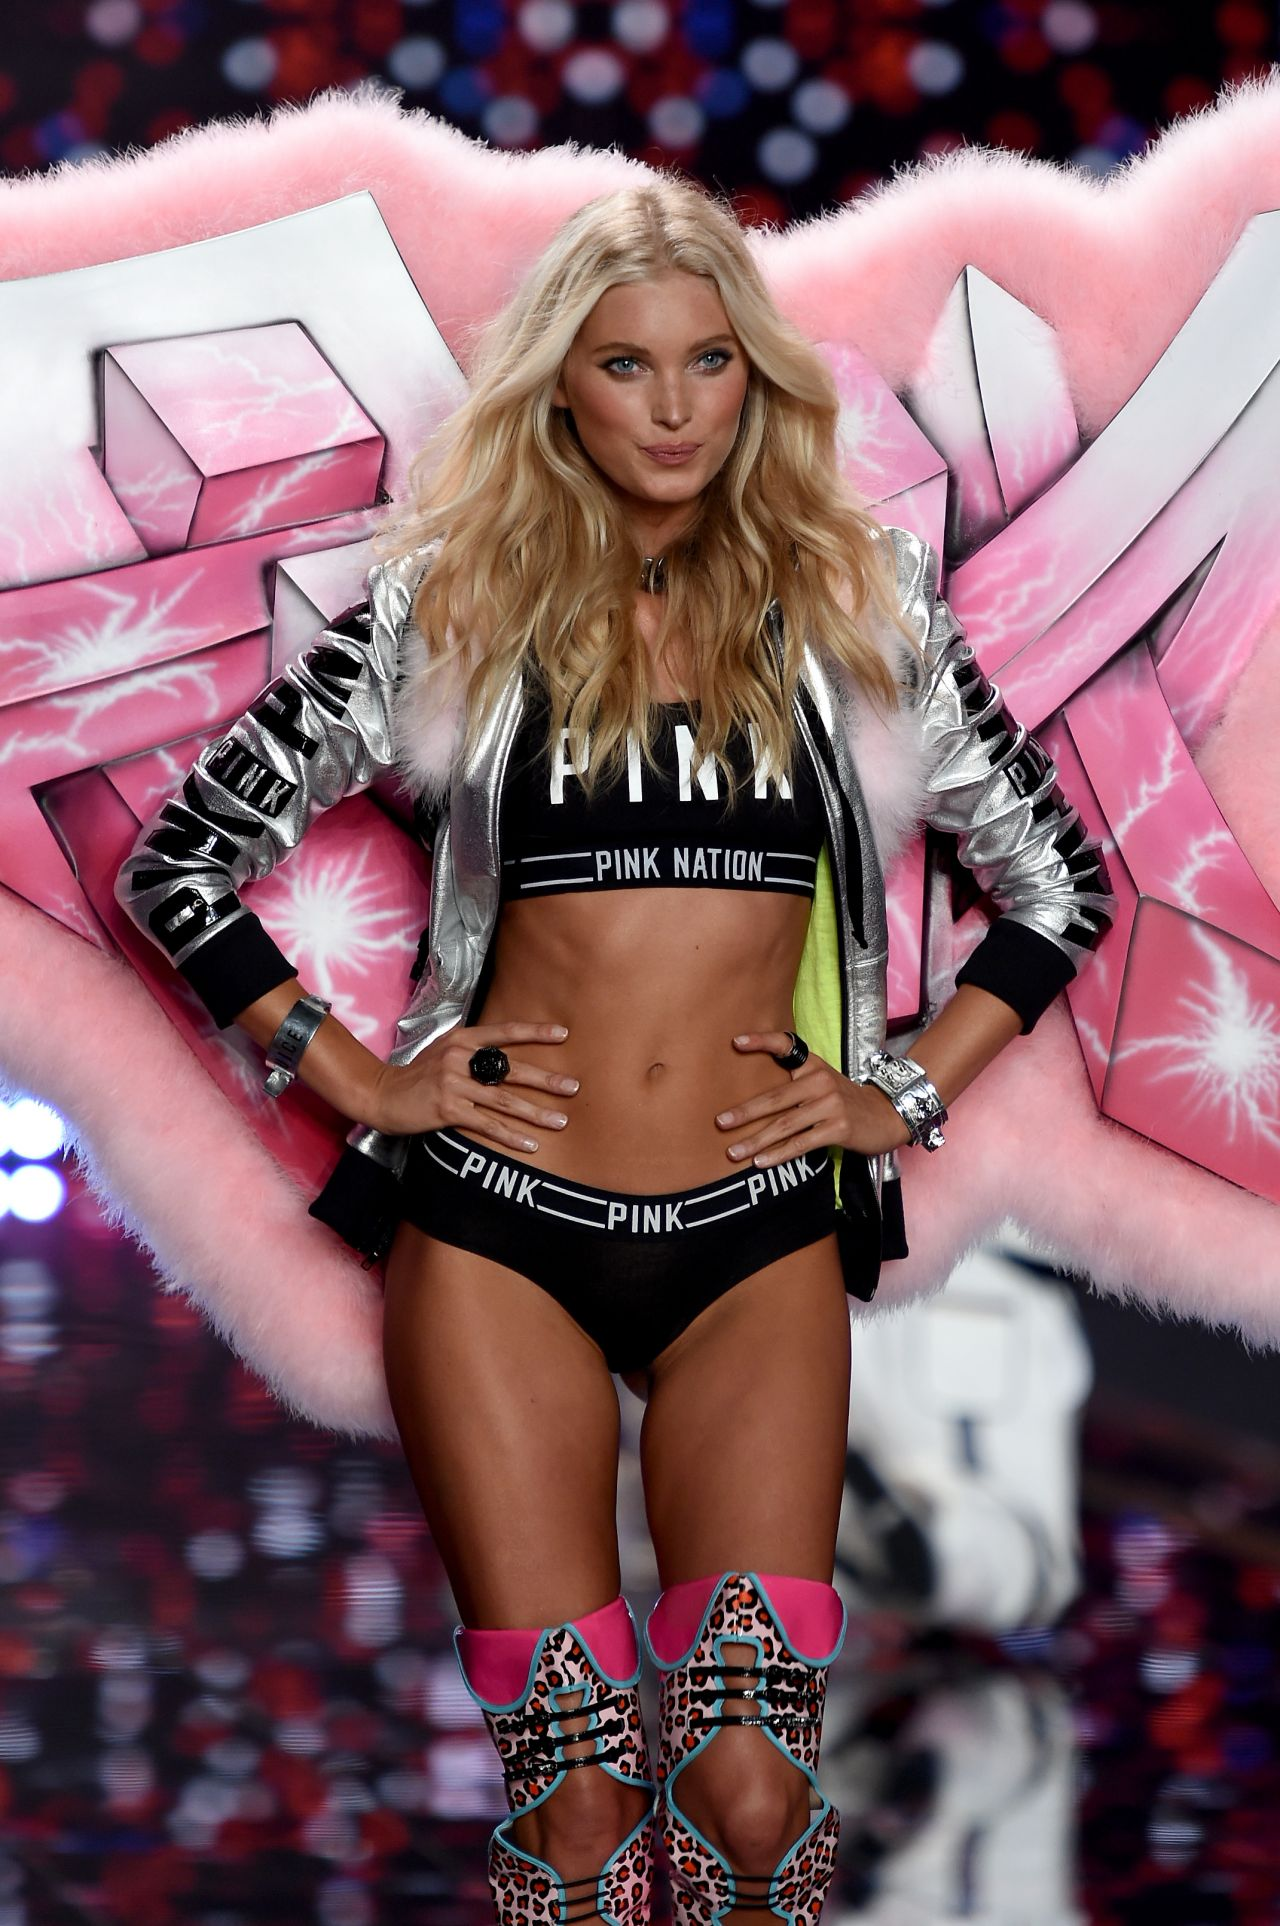 The Victoria's Secret Angels are ready for a plus-size model